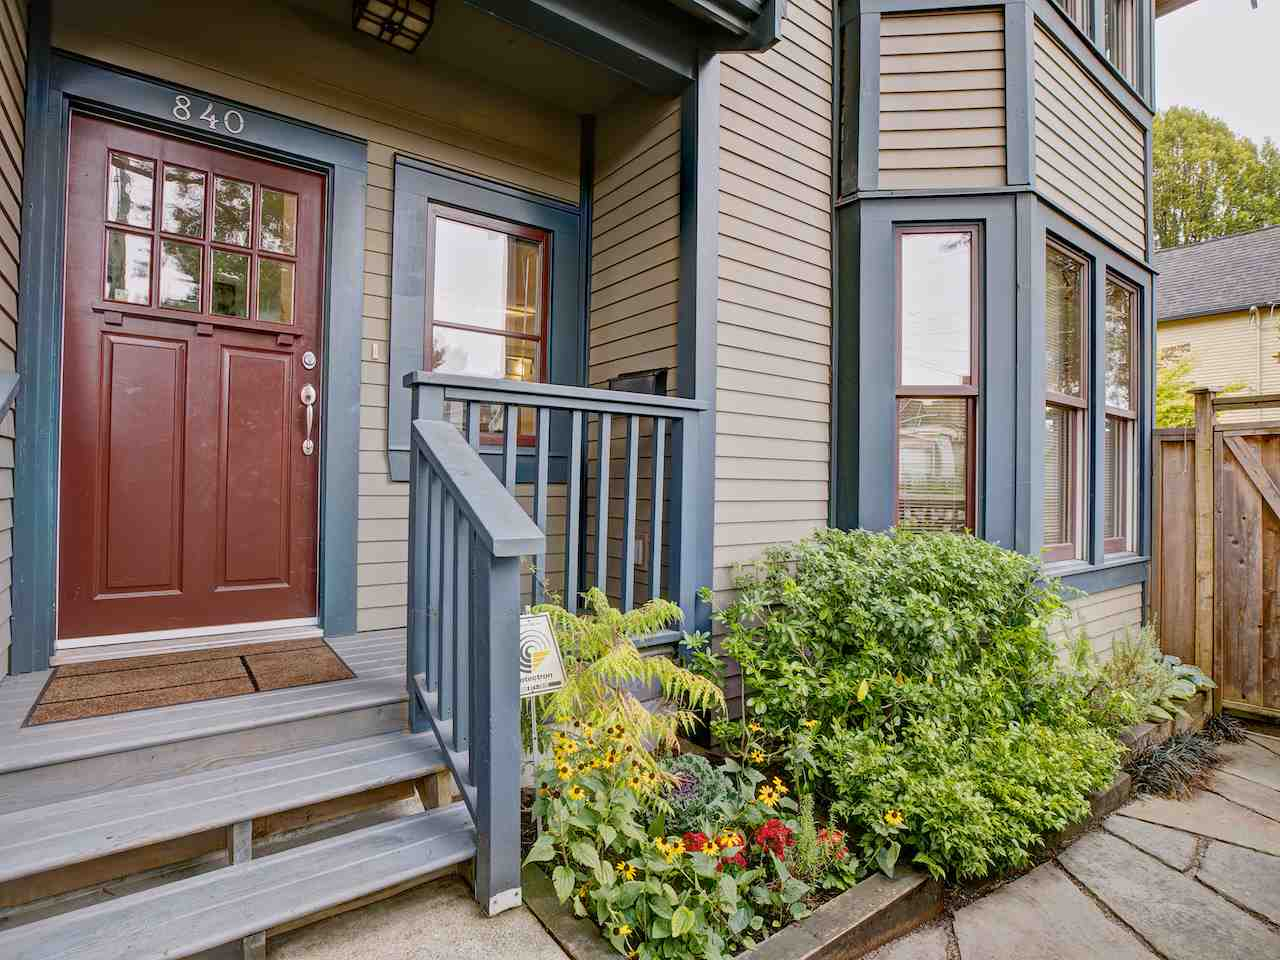 Photo 3: 840 DUNLEVY Avenue in Vancouver: Mount Pleasant VE House for sale (Vancouver East)  : MLS® # R2000261